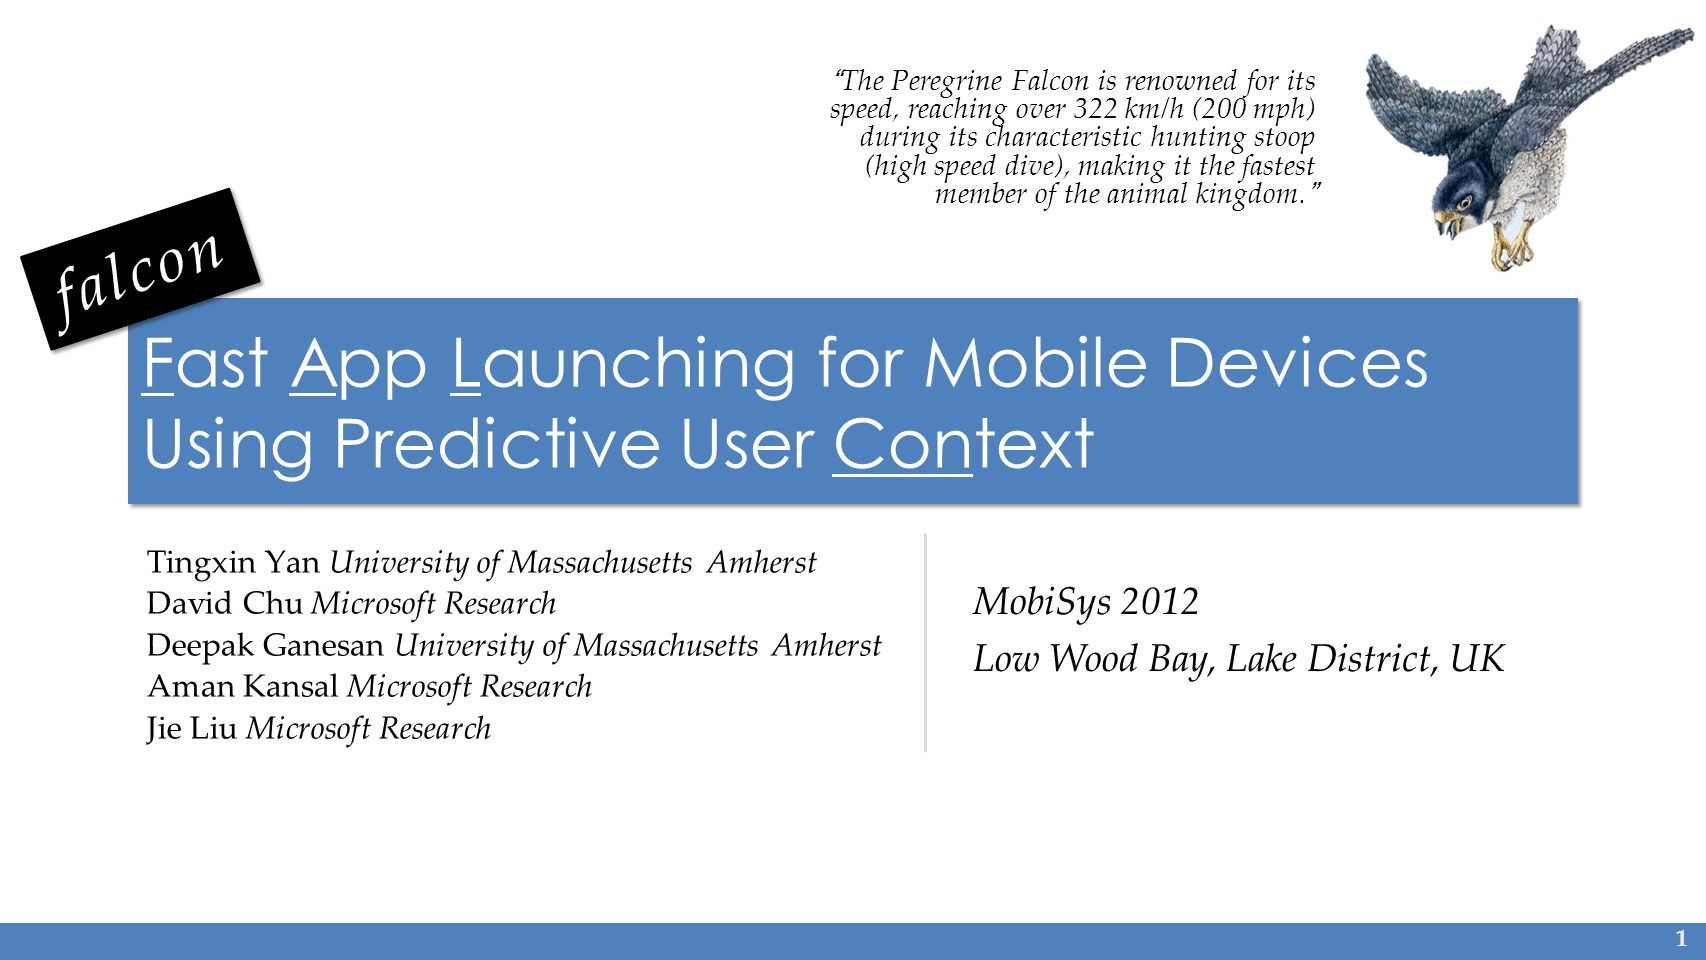 Fast App Launching for Mobile Devices Using Predictive User Context Tingxin Yan University of Massachusetts Amherst David Chu Microsoft Research Deepak Ganesan University of Massachusetts Amherst Aman Kansal Microsoft Research Jie Liu Microsoft Research 1 The Peregrine Falcon is renowned for its speed, reaching over 322 km/h (200 mph) during its characteristic hunting stoop (high speed dive), making it the fastest member of the animal kingdom.